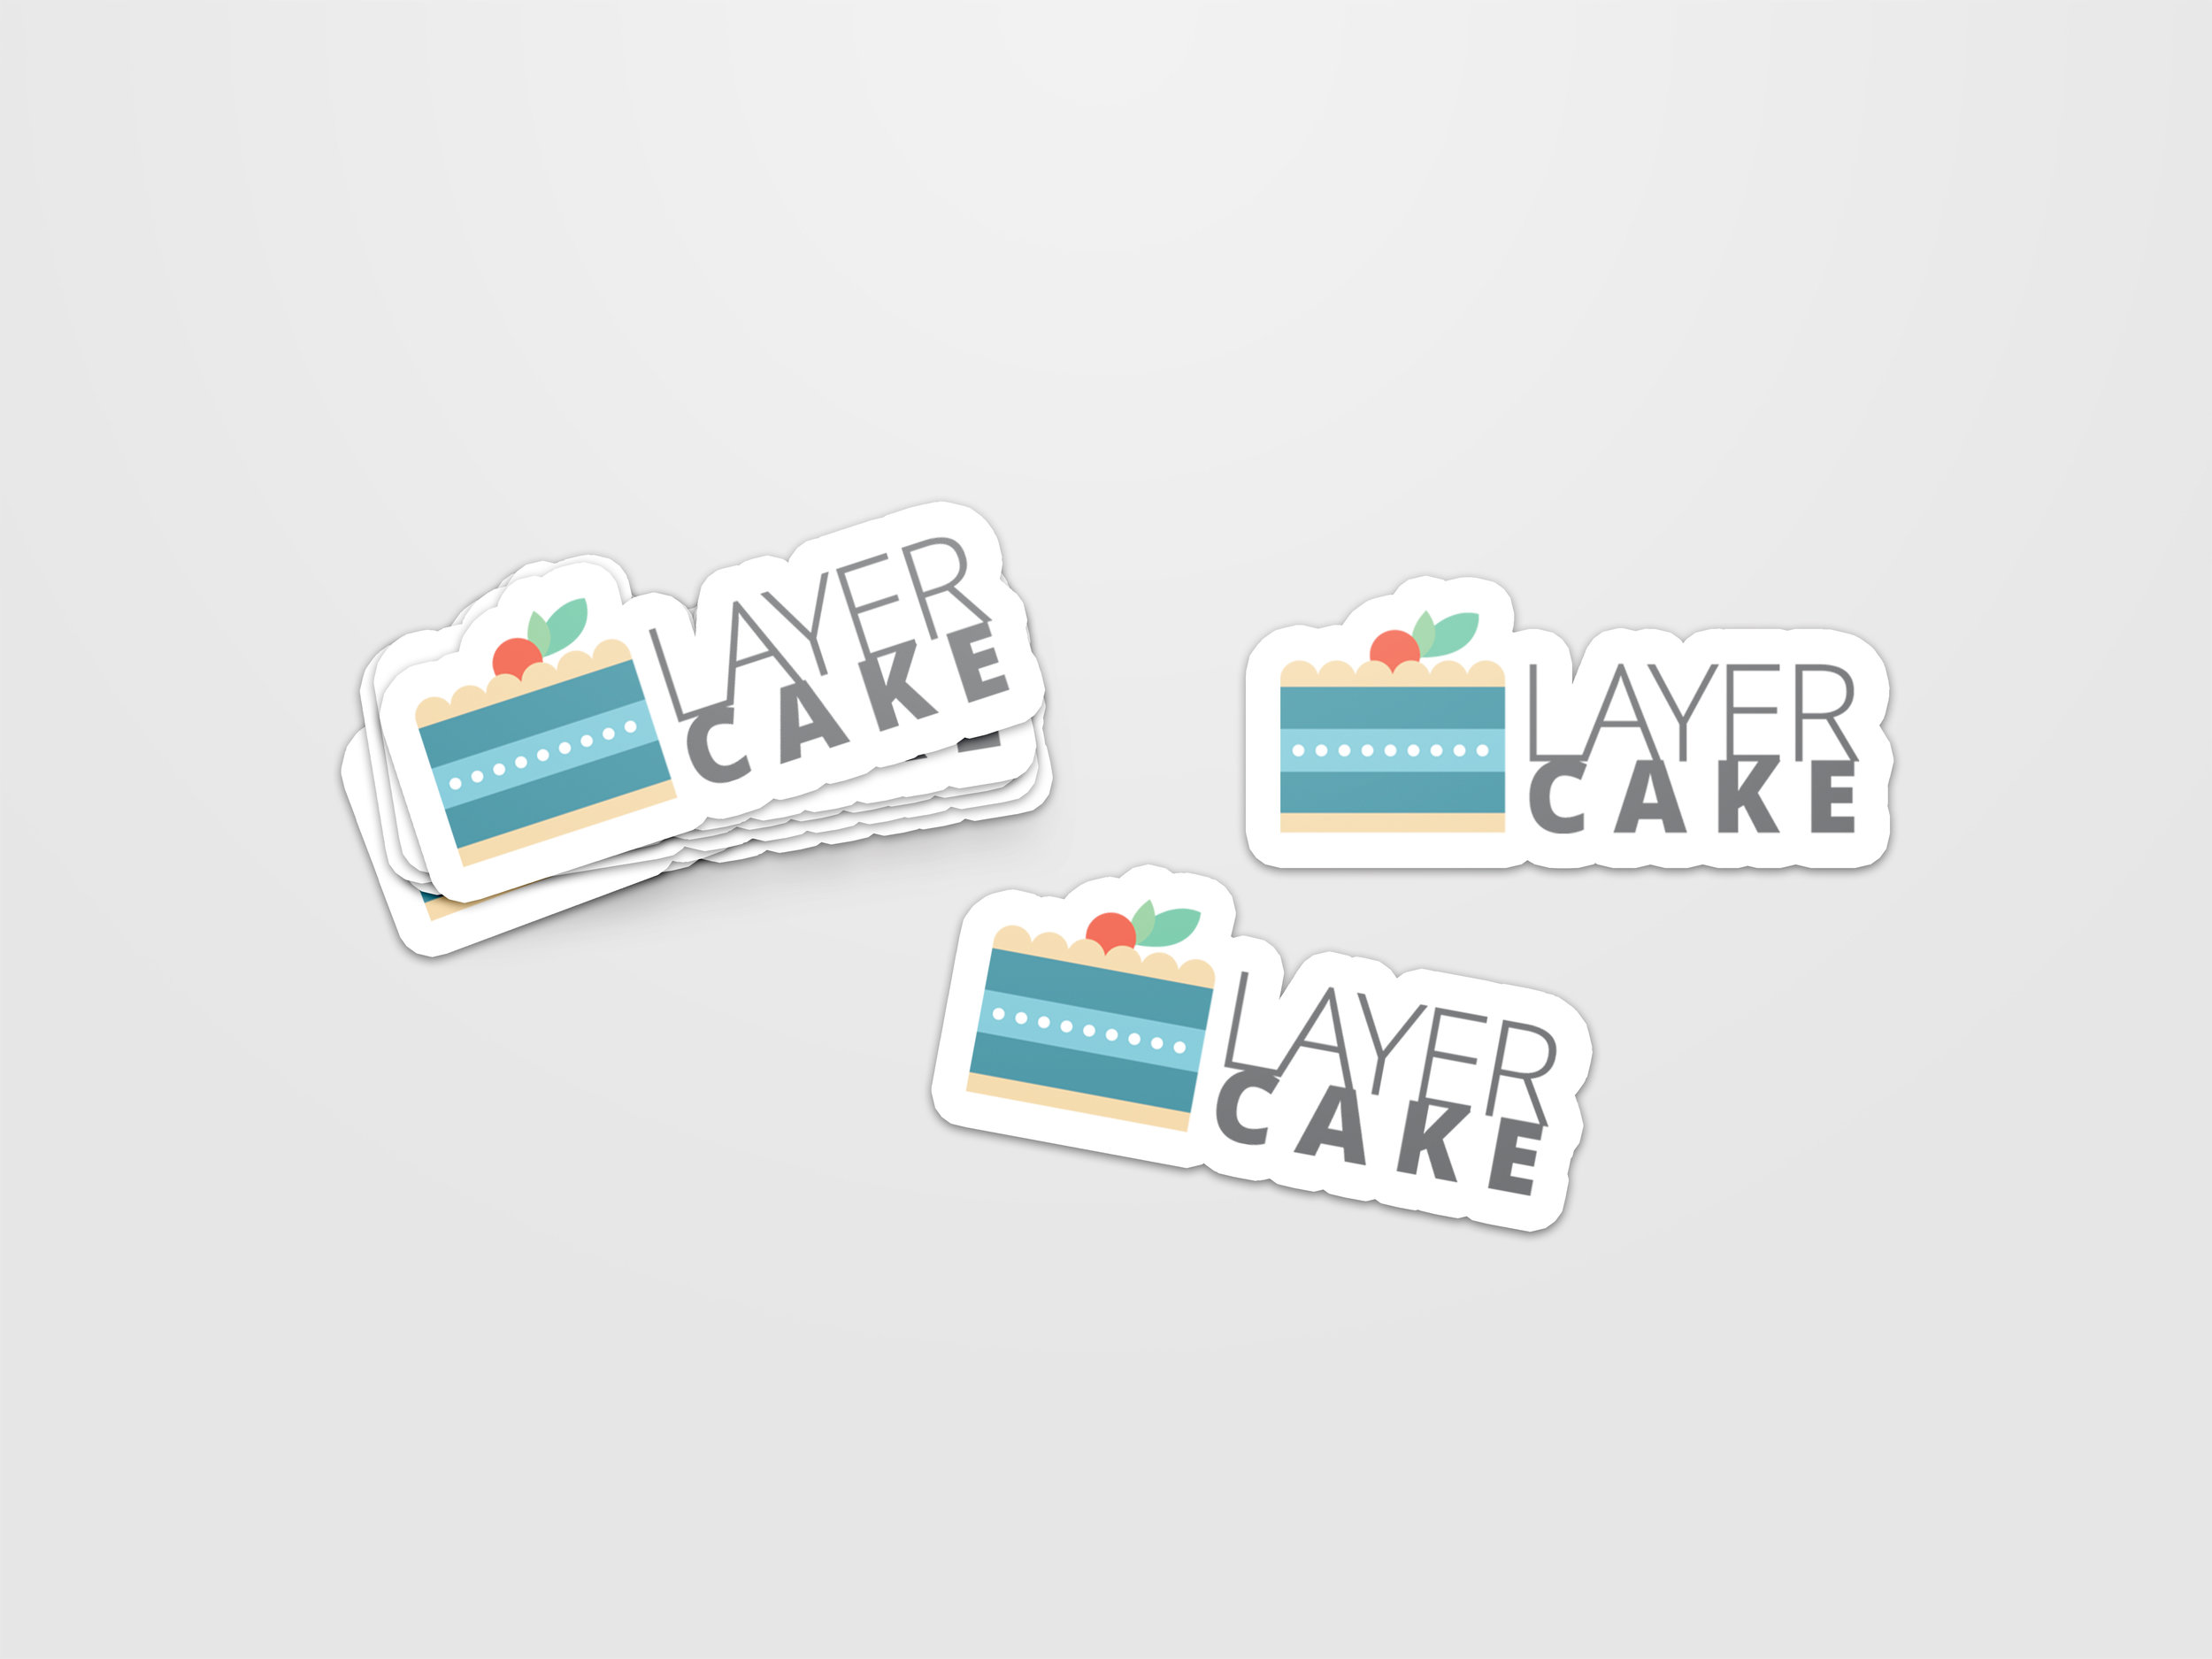 sticker-mockup_LayerCake_light-greyV2.jpg